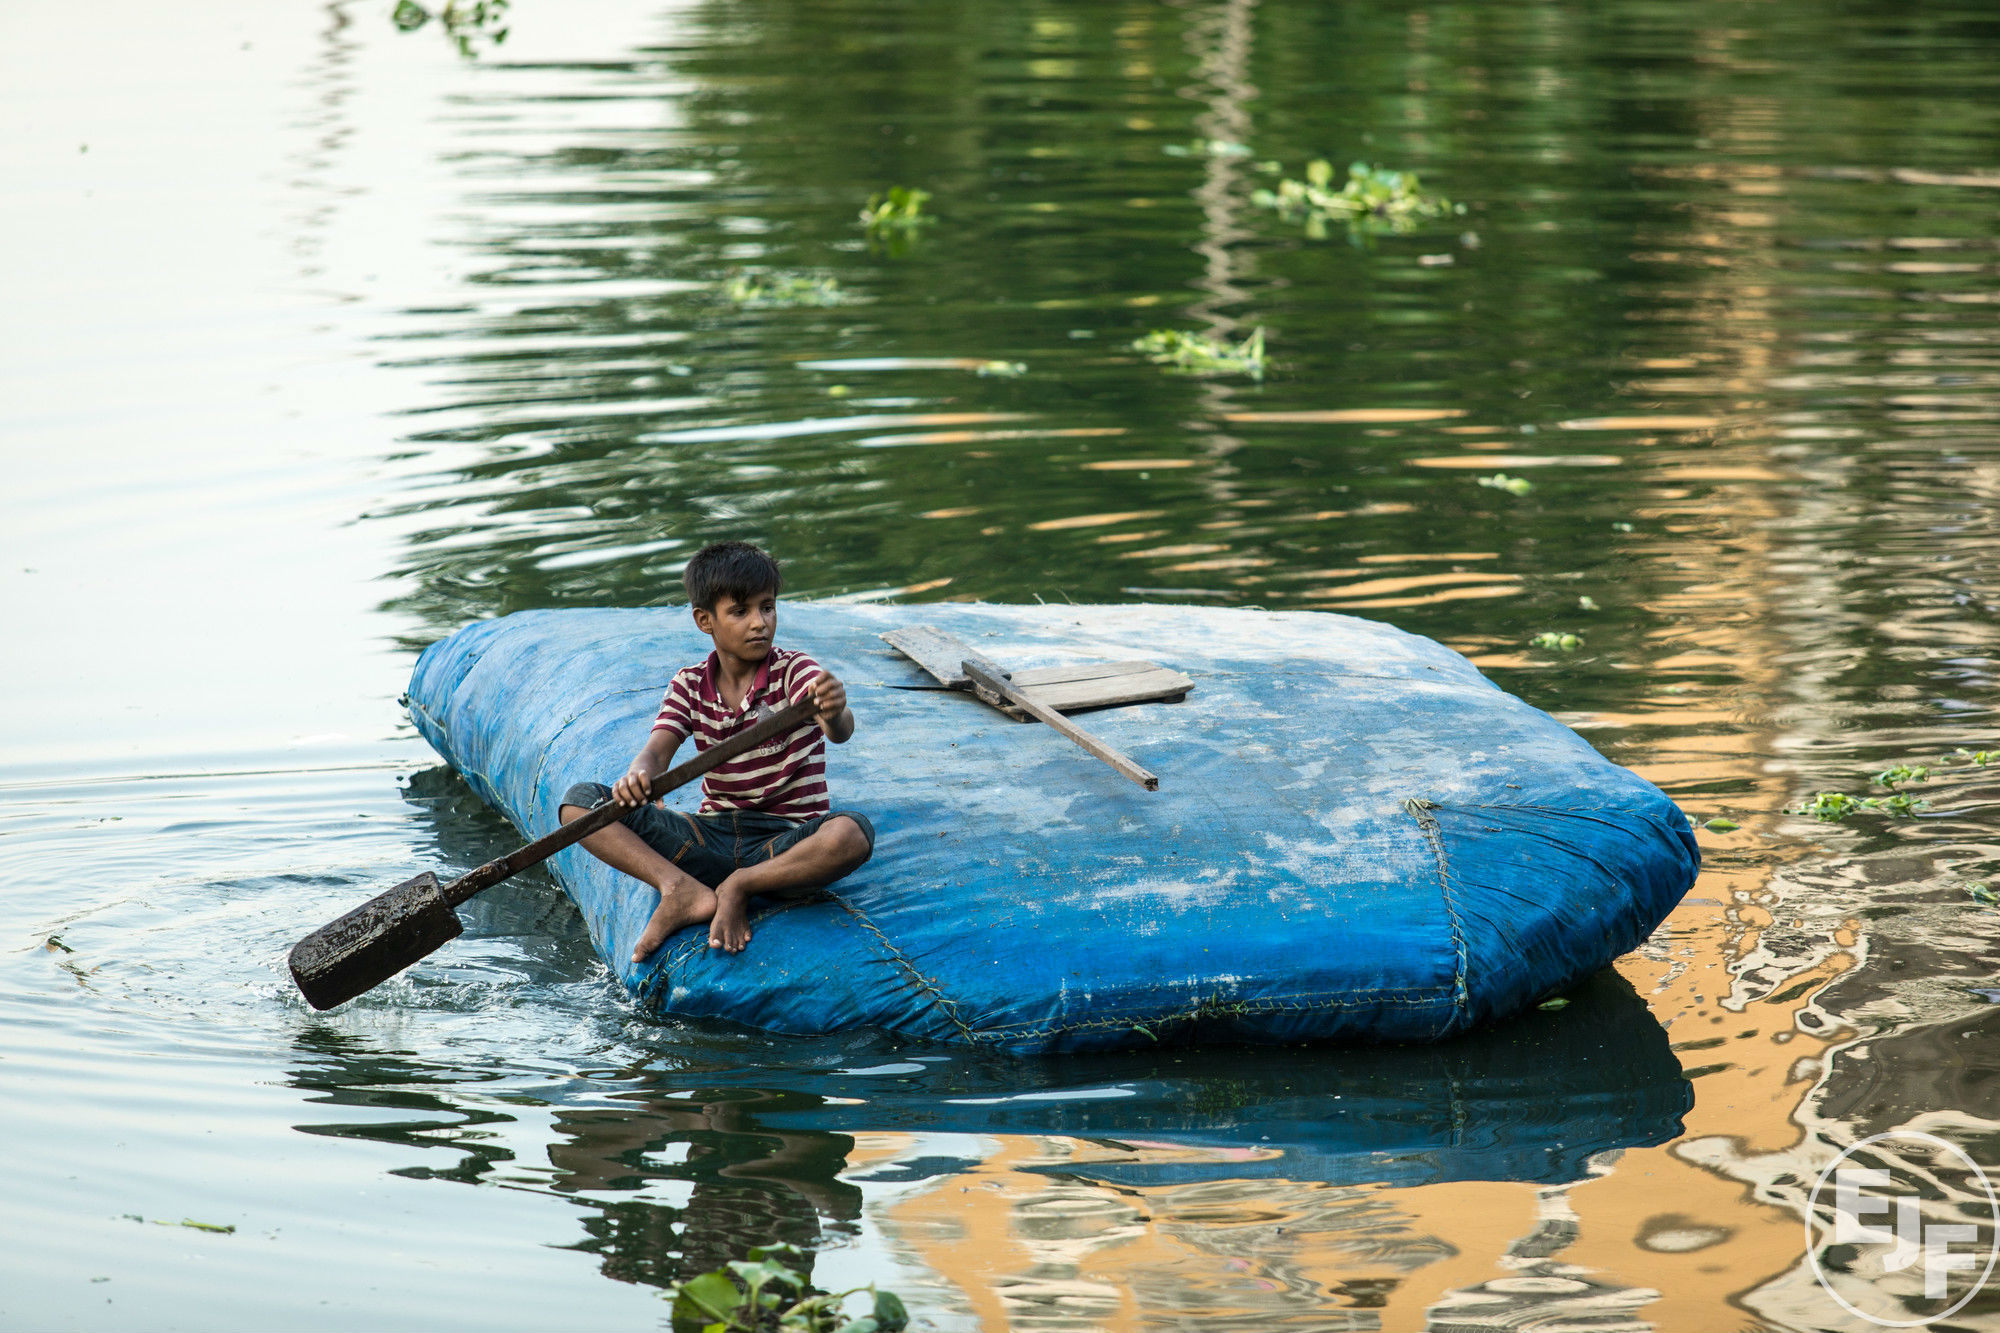 Climate change is an urgent threat to human rights around the world